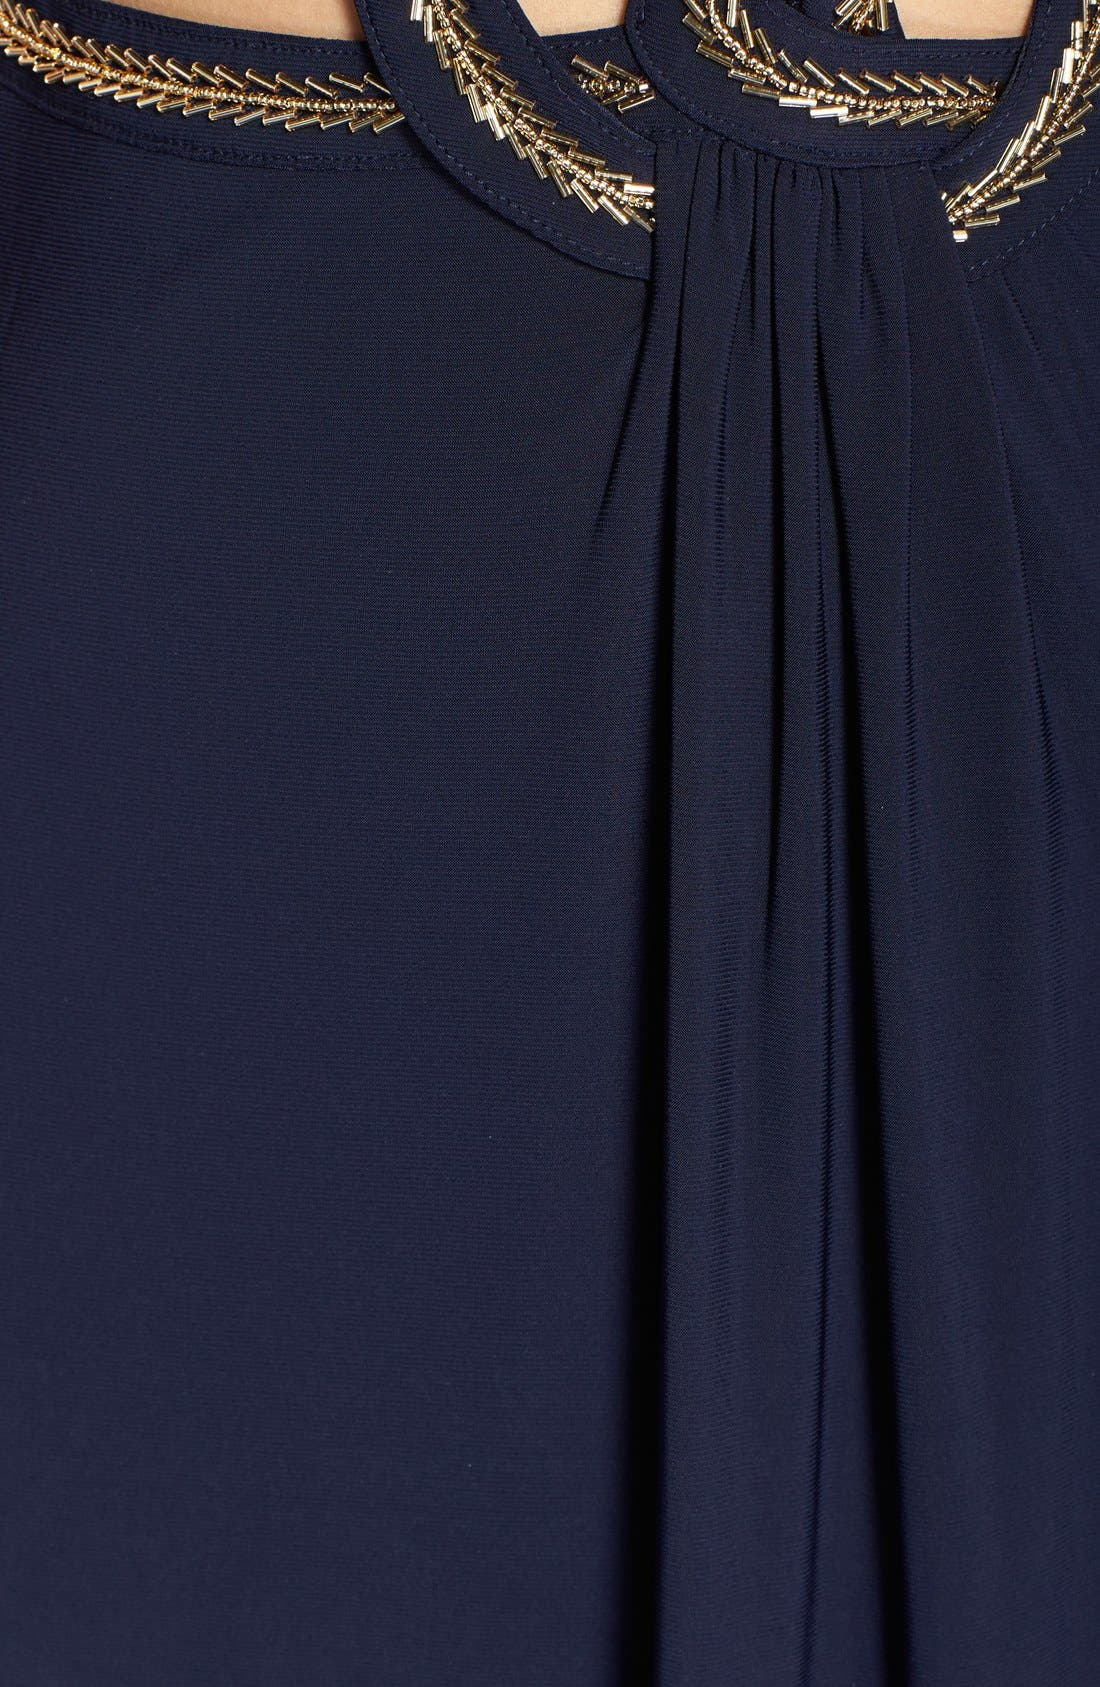 Alternate Image 3  - Betsy & Adam Cutout Jersey Gown